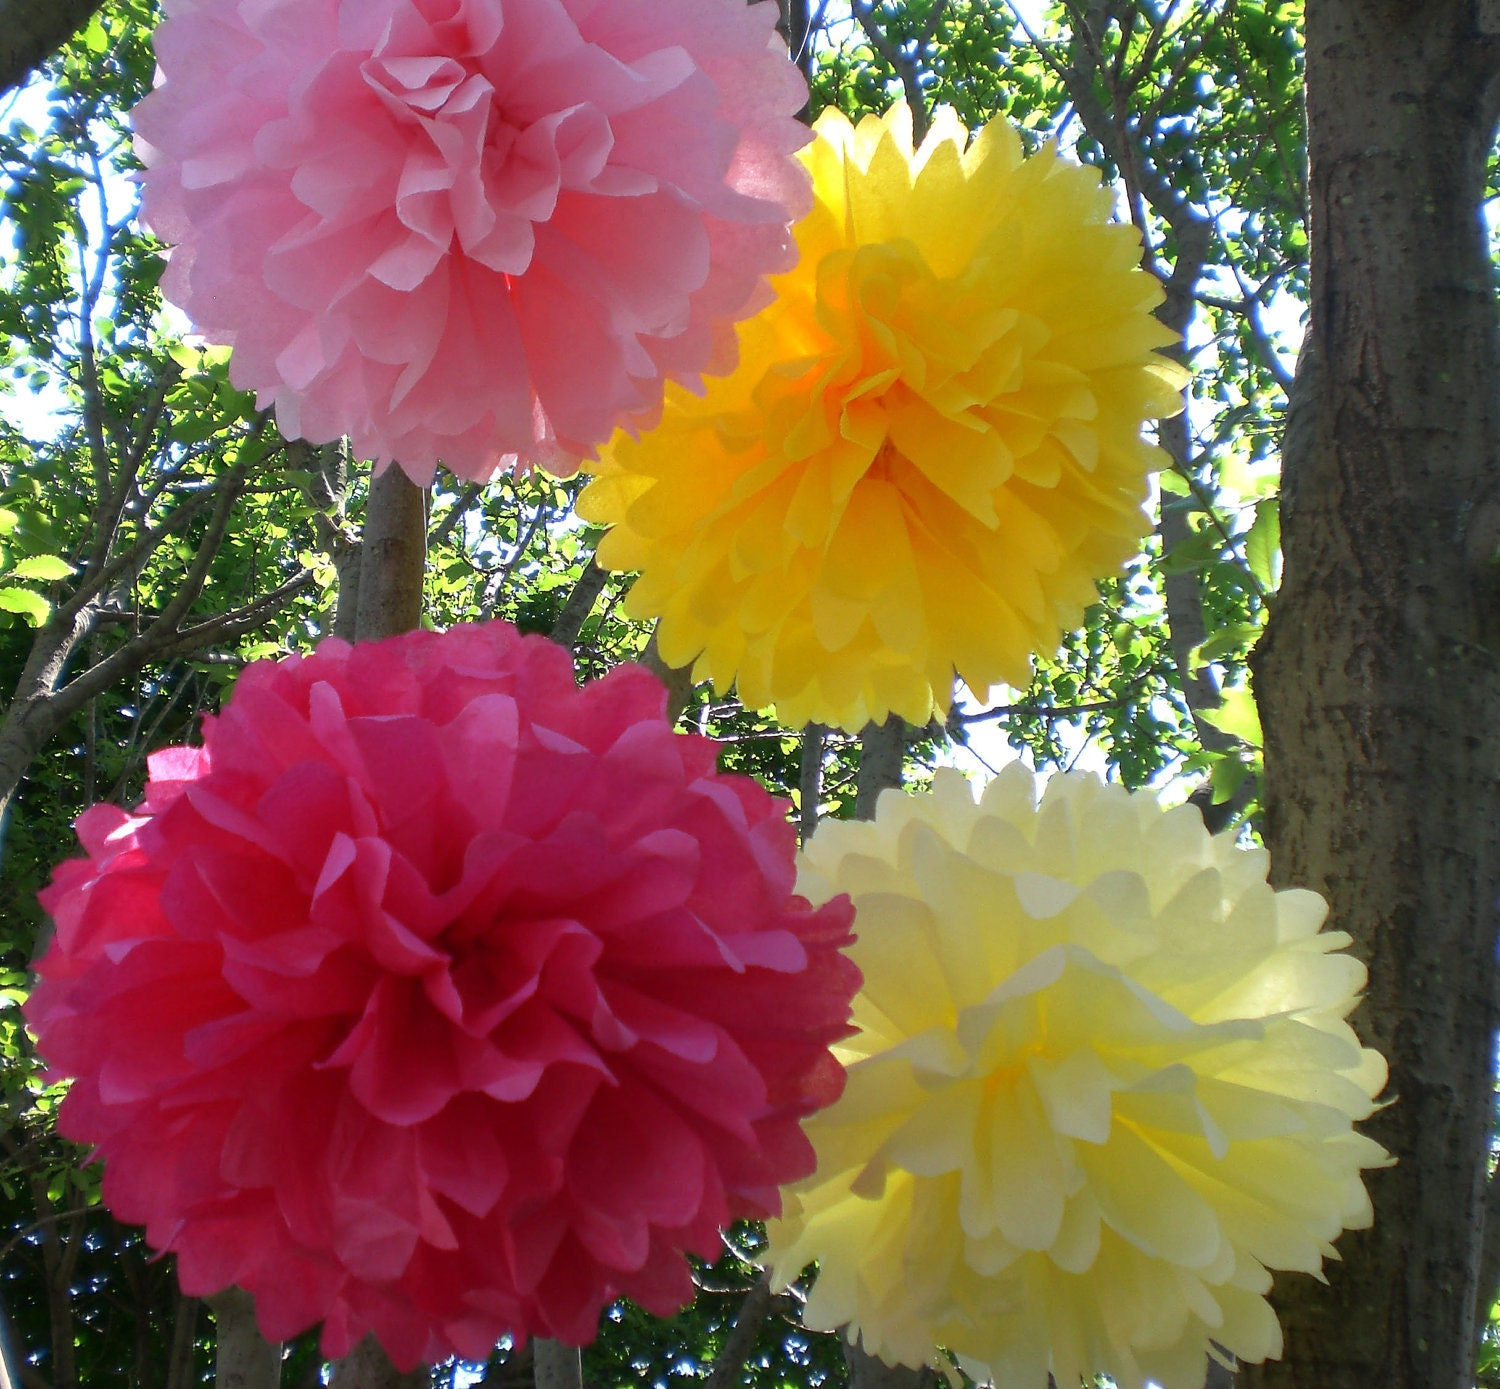 Free garden decoration ideas photograph birthday party dec for Flower garden decorations